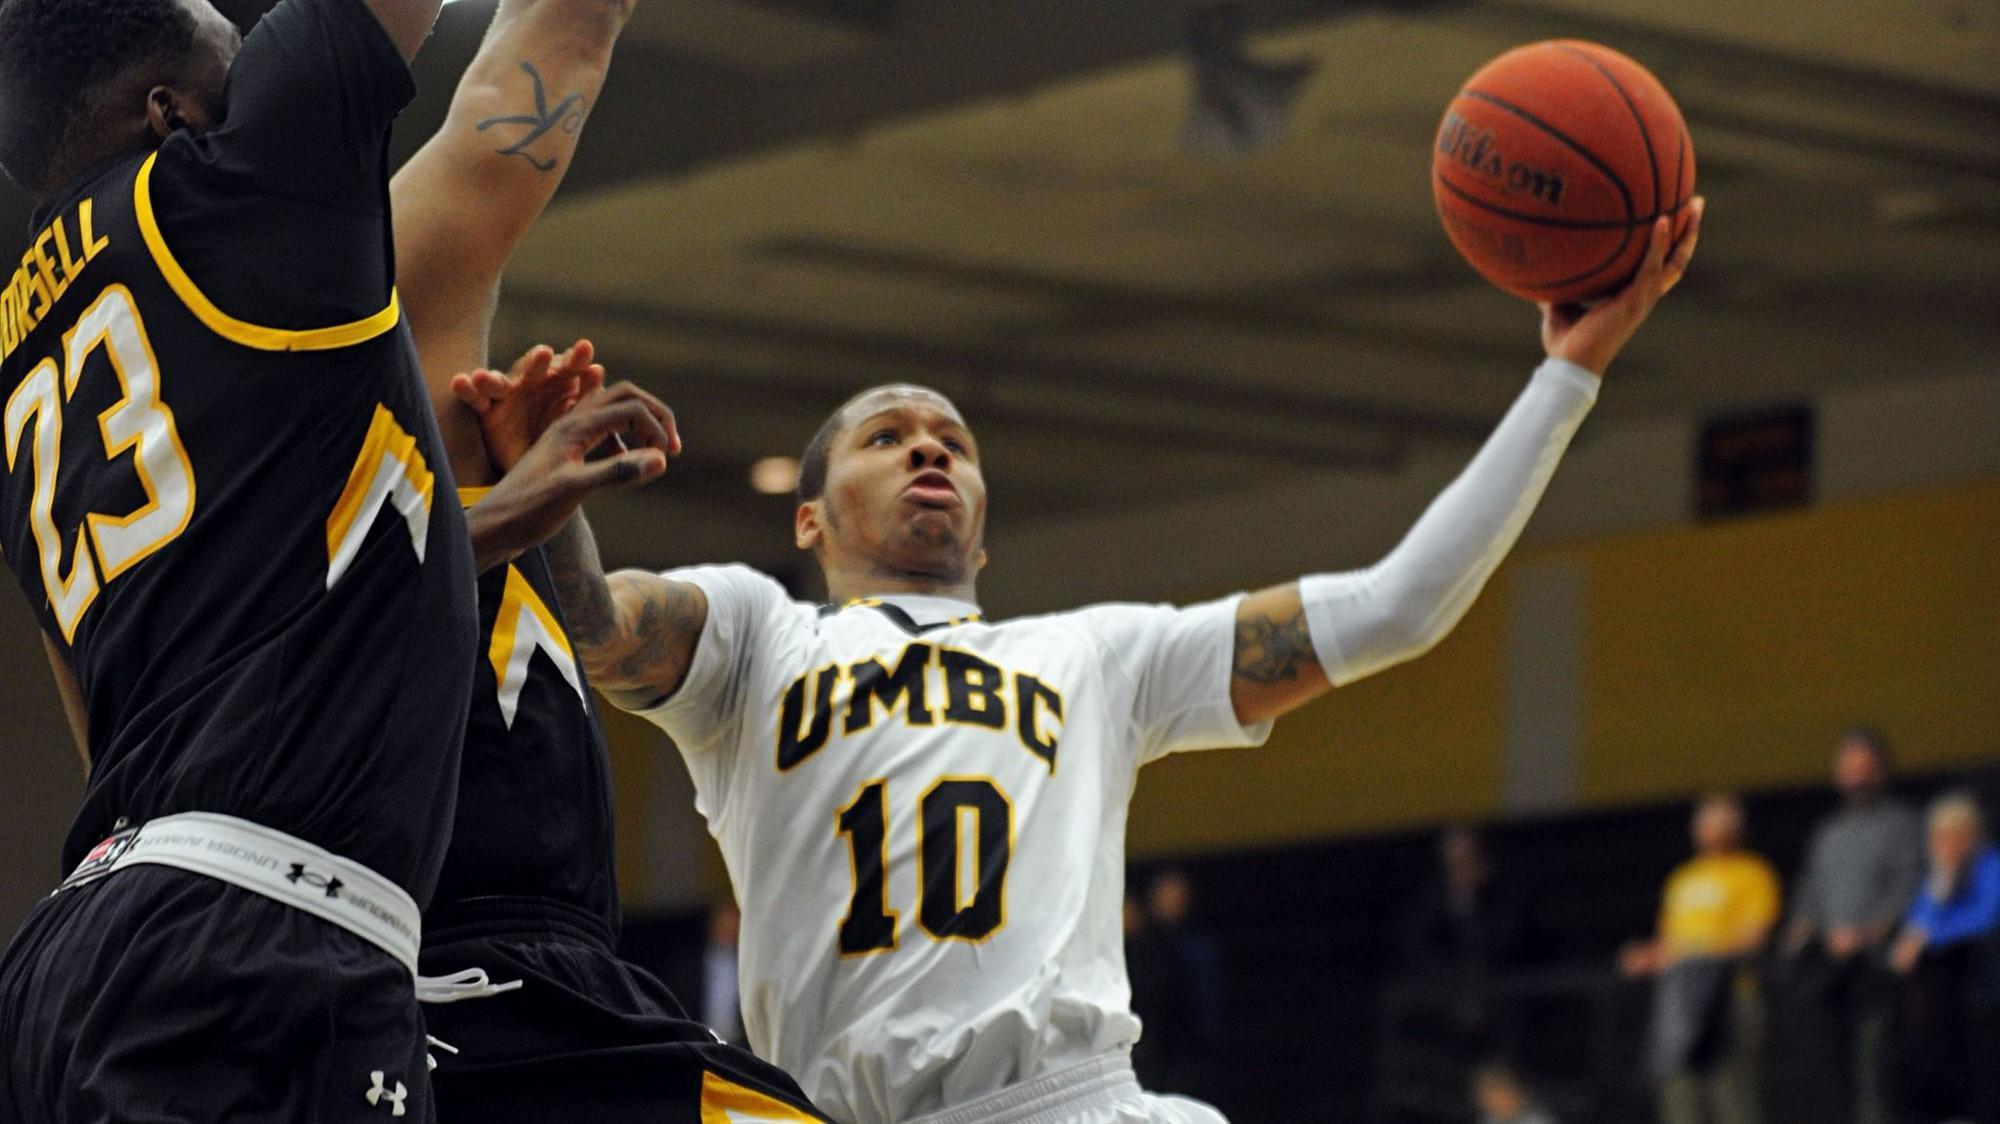 In Ryan Odom's second year at UMBC, great expectations — and a good sweat, too